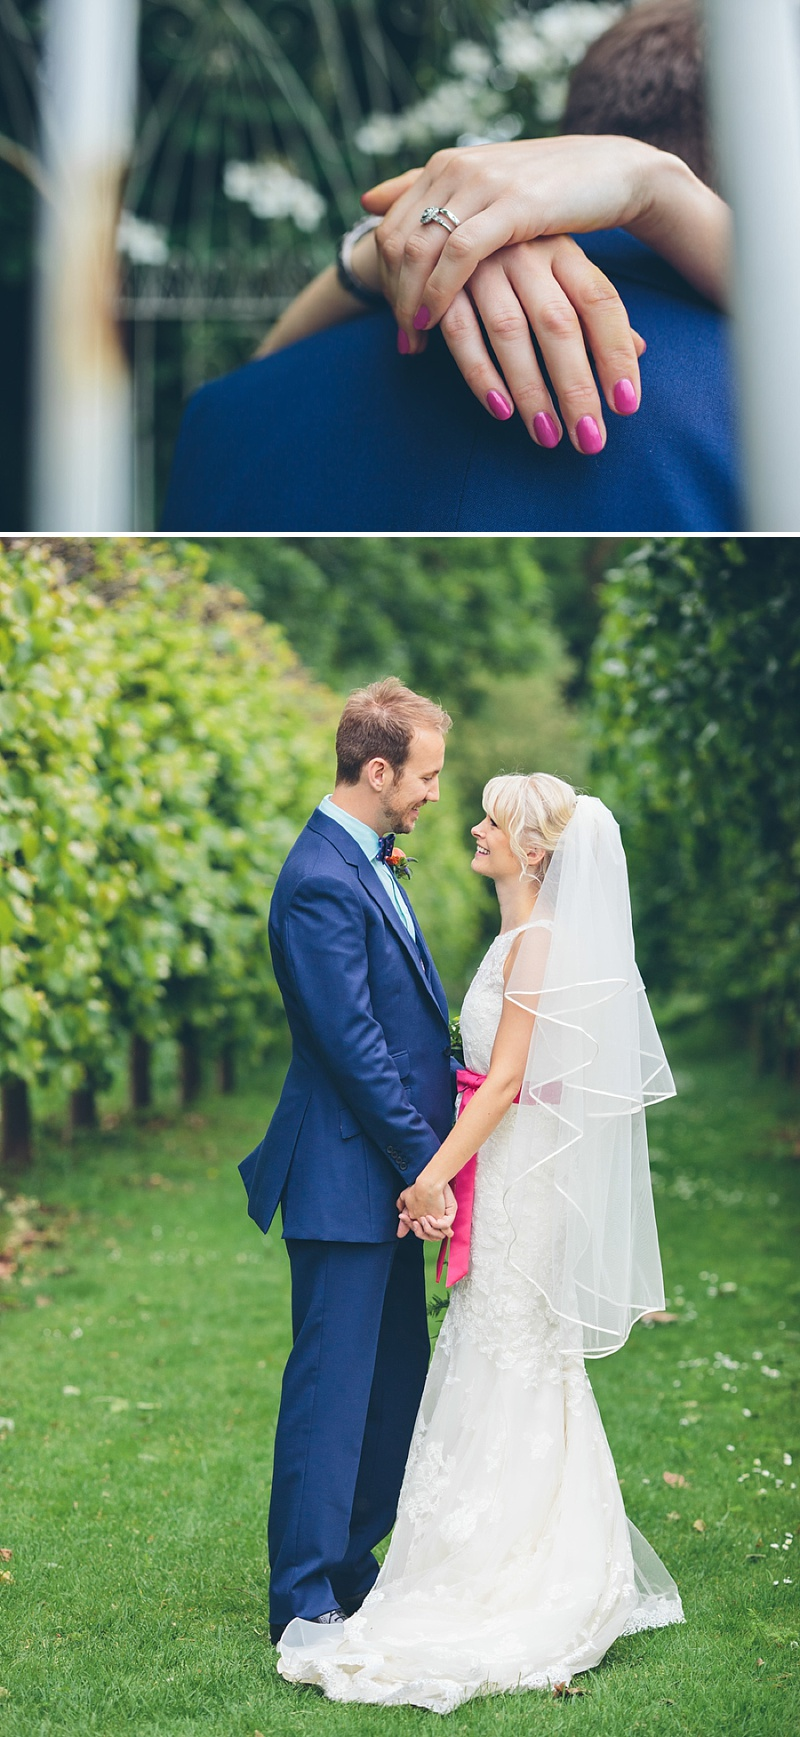 Colourful Rustic Wedding At The Rickety Barn Cambridgeshire Bride In Benjamin Roberts Gown Groom In Navy Cad And The Dandy Suit Images By Richard Skins032